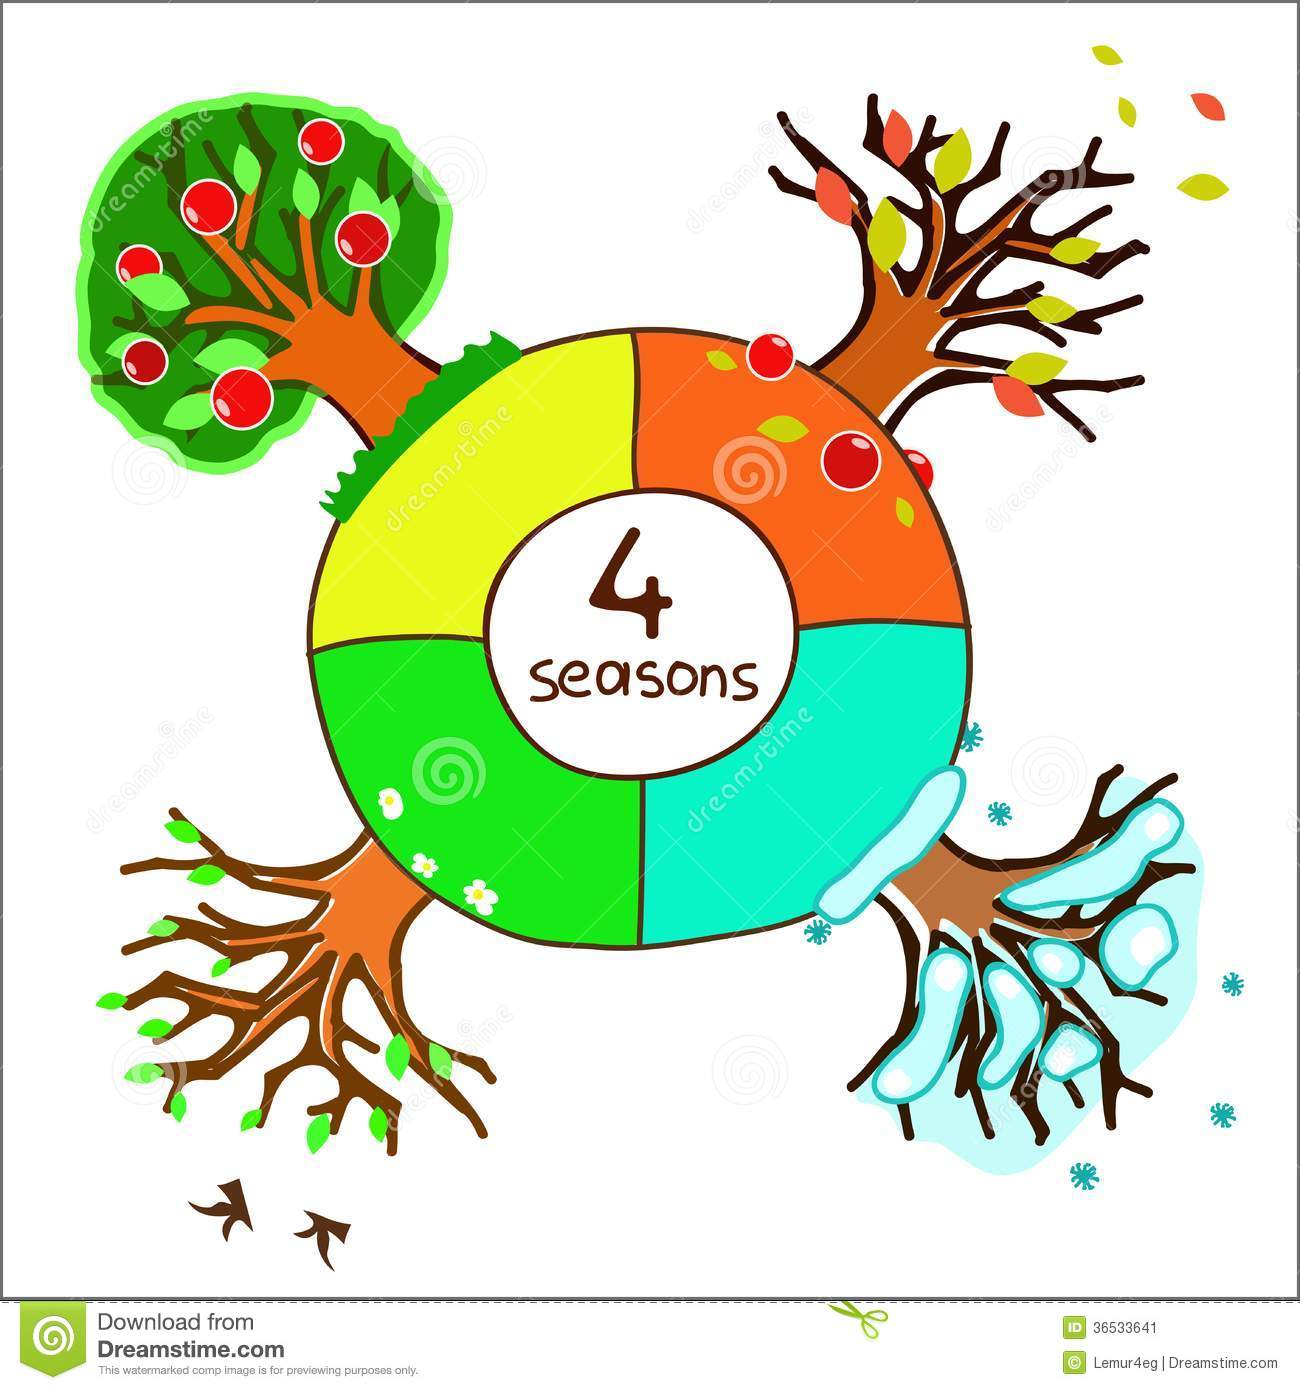 Four seasons for design of a calendar stock image image for 4 seasons decoration